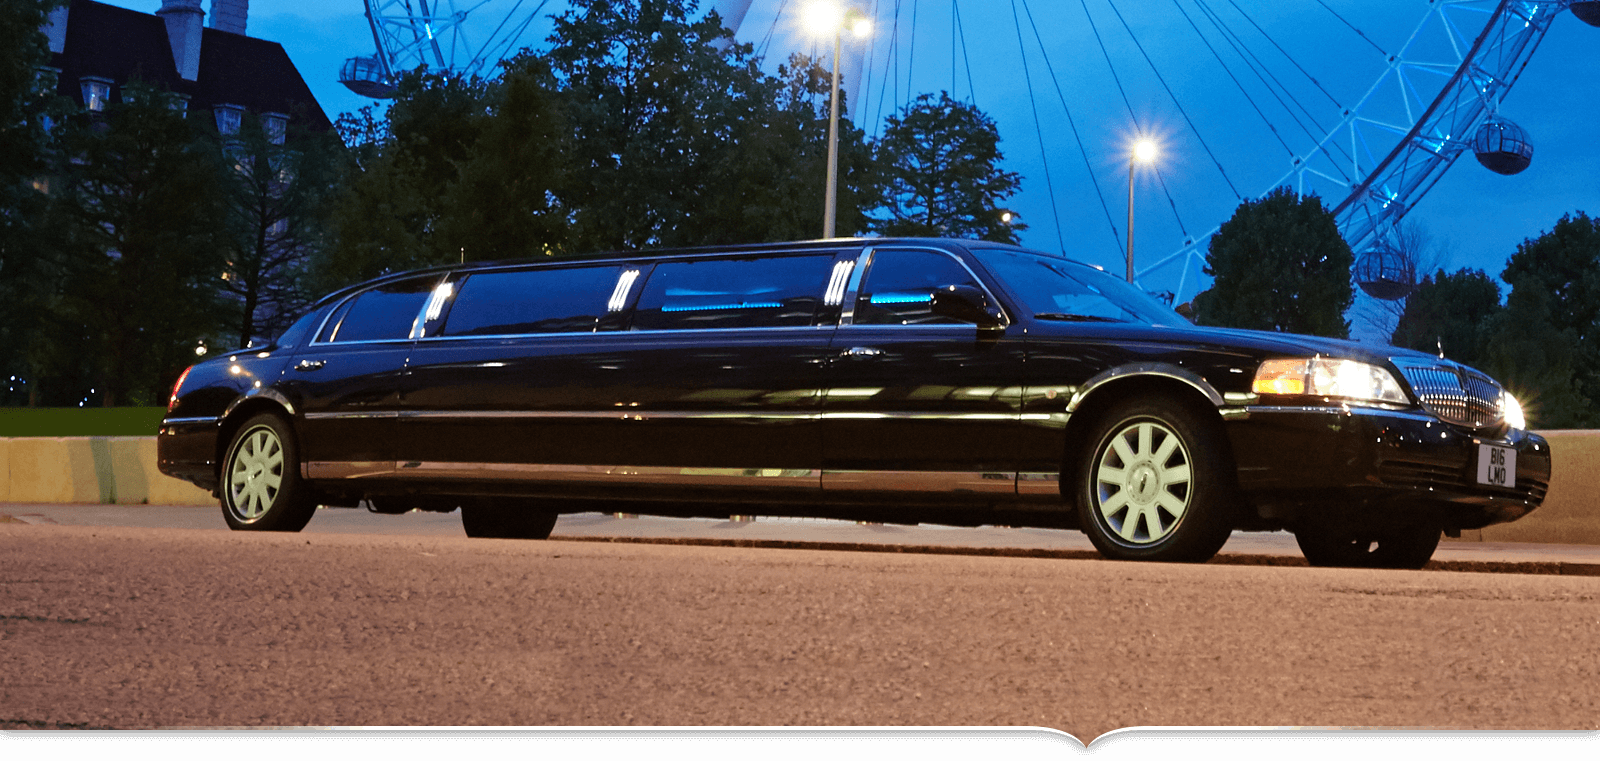 The Occasions When you Only Need Renting a Luxury Limo - Limos Inn